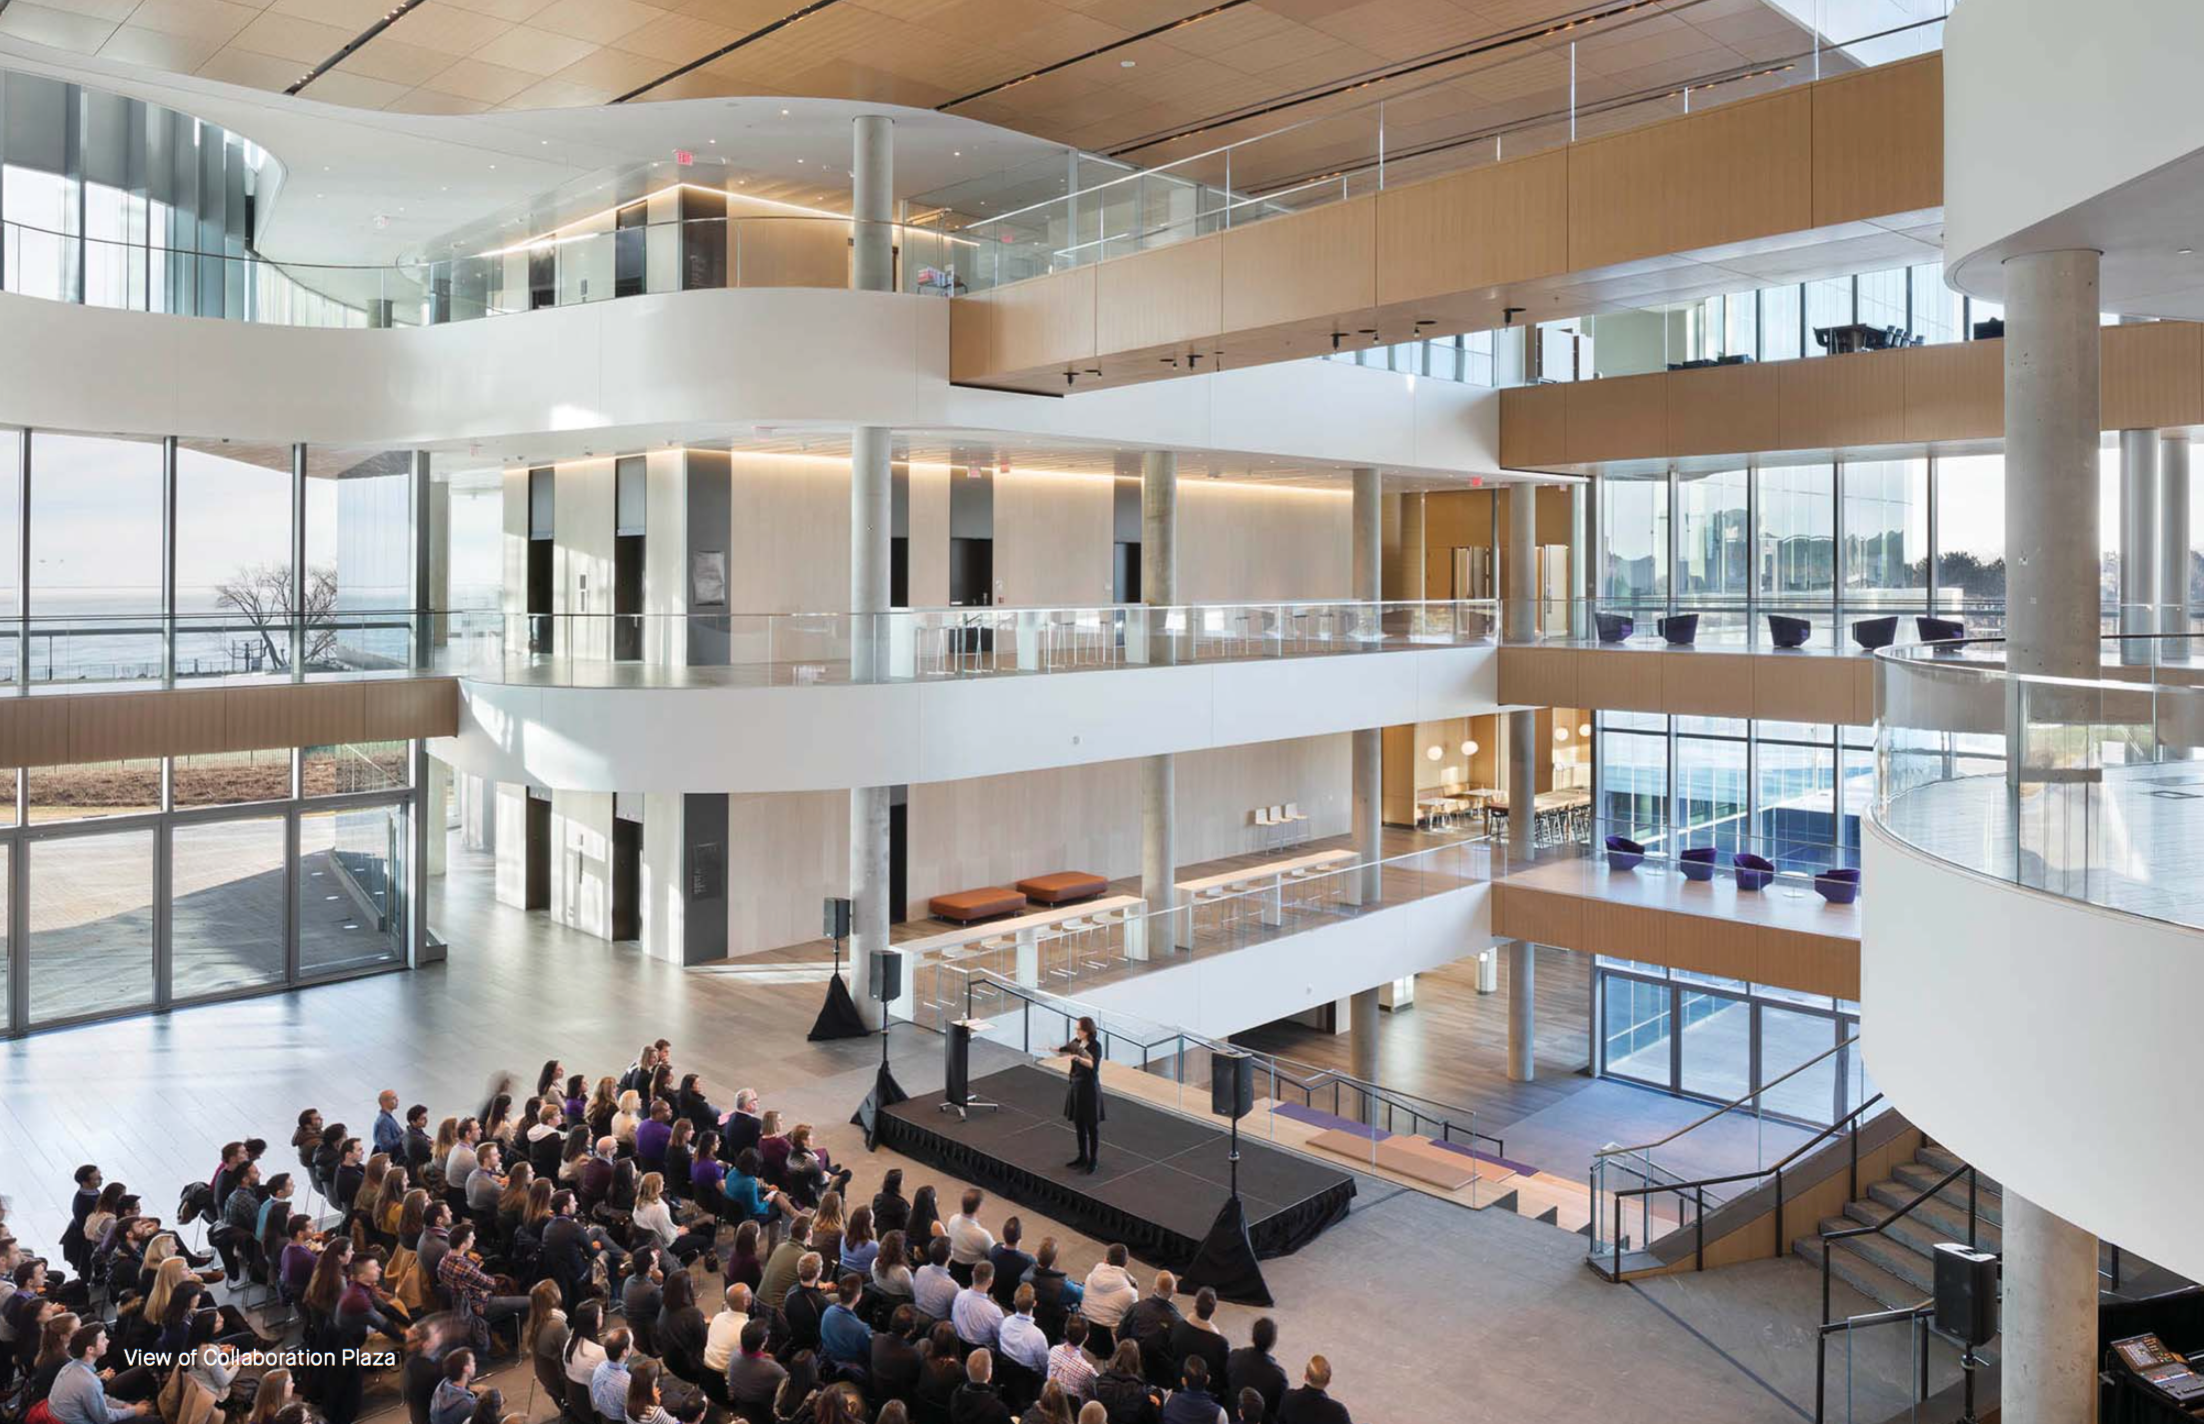 Northwestern Opens New Kellogg Global Hub At Its Evanston. Washington State University Online Mba. How To Fix The Water Heater Small New Cars. What Does Dodge Stand For Donate Your Vehicle. Home Equity Loan In Texas Meth Rehab Centers. American Association For Cancer. Service Desk Ticketing Software. Equifax Free Report Denied Credit. Logo Designers In Los Angeles